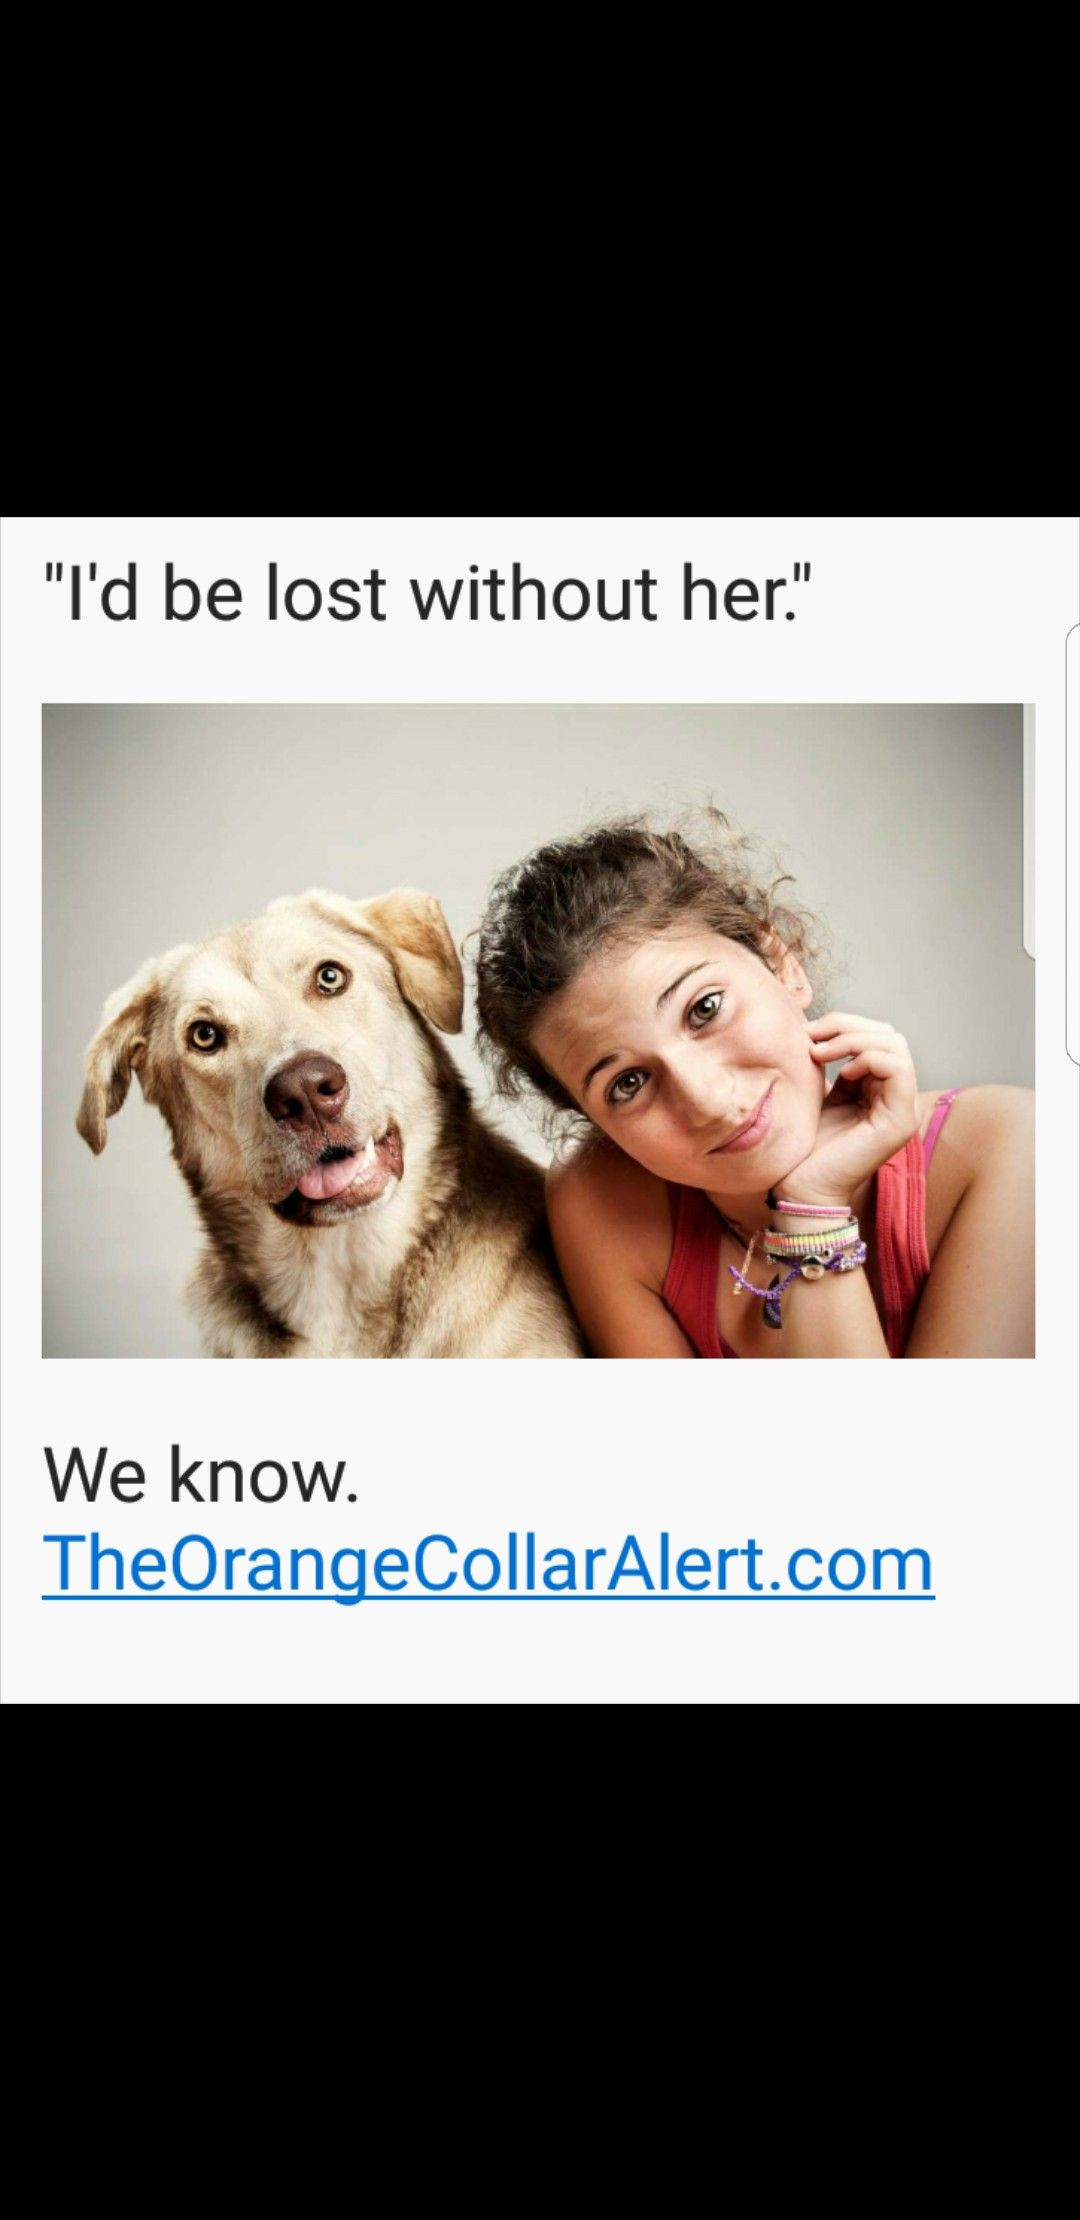 One Orange Collar can save your pet, help pass laws for